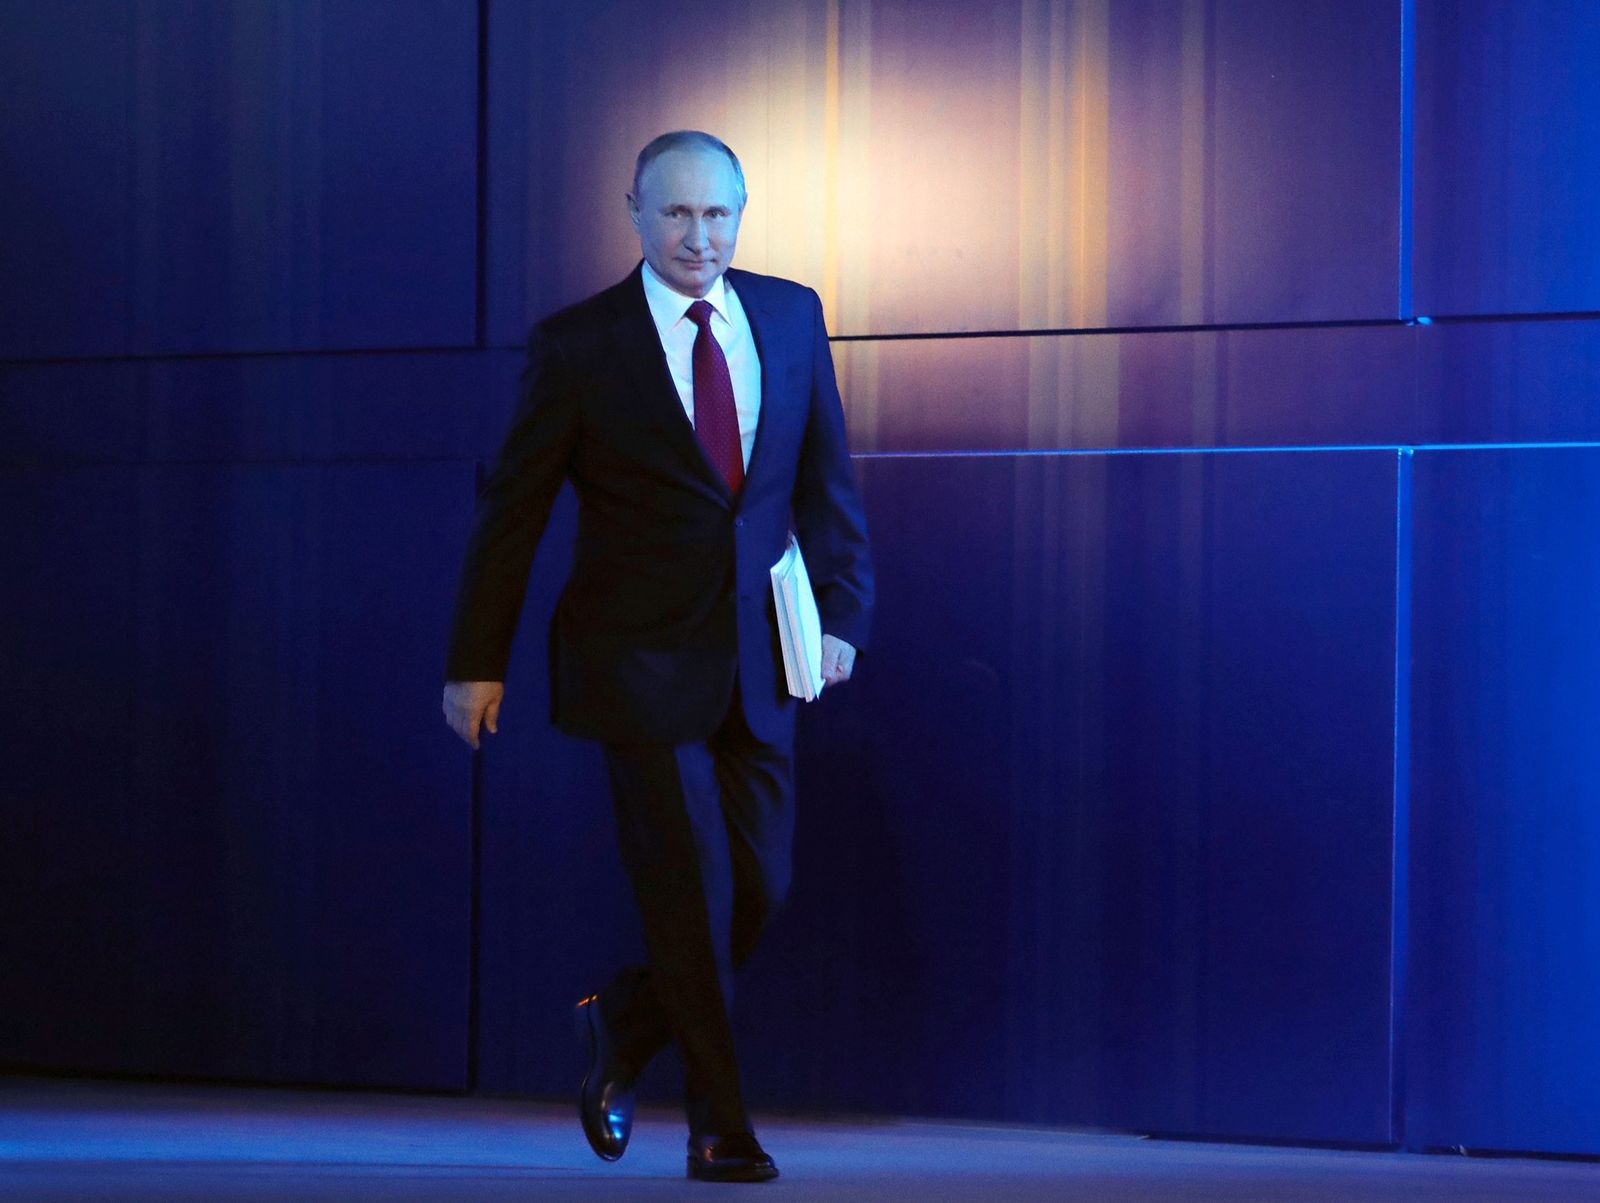 Russian President Vladimir Putin addresses Federal Assembly, Moscow, Russian Federation - 15 Jan 2020